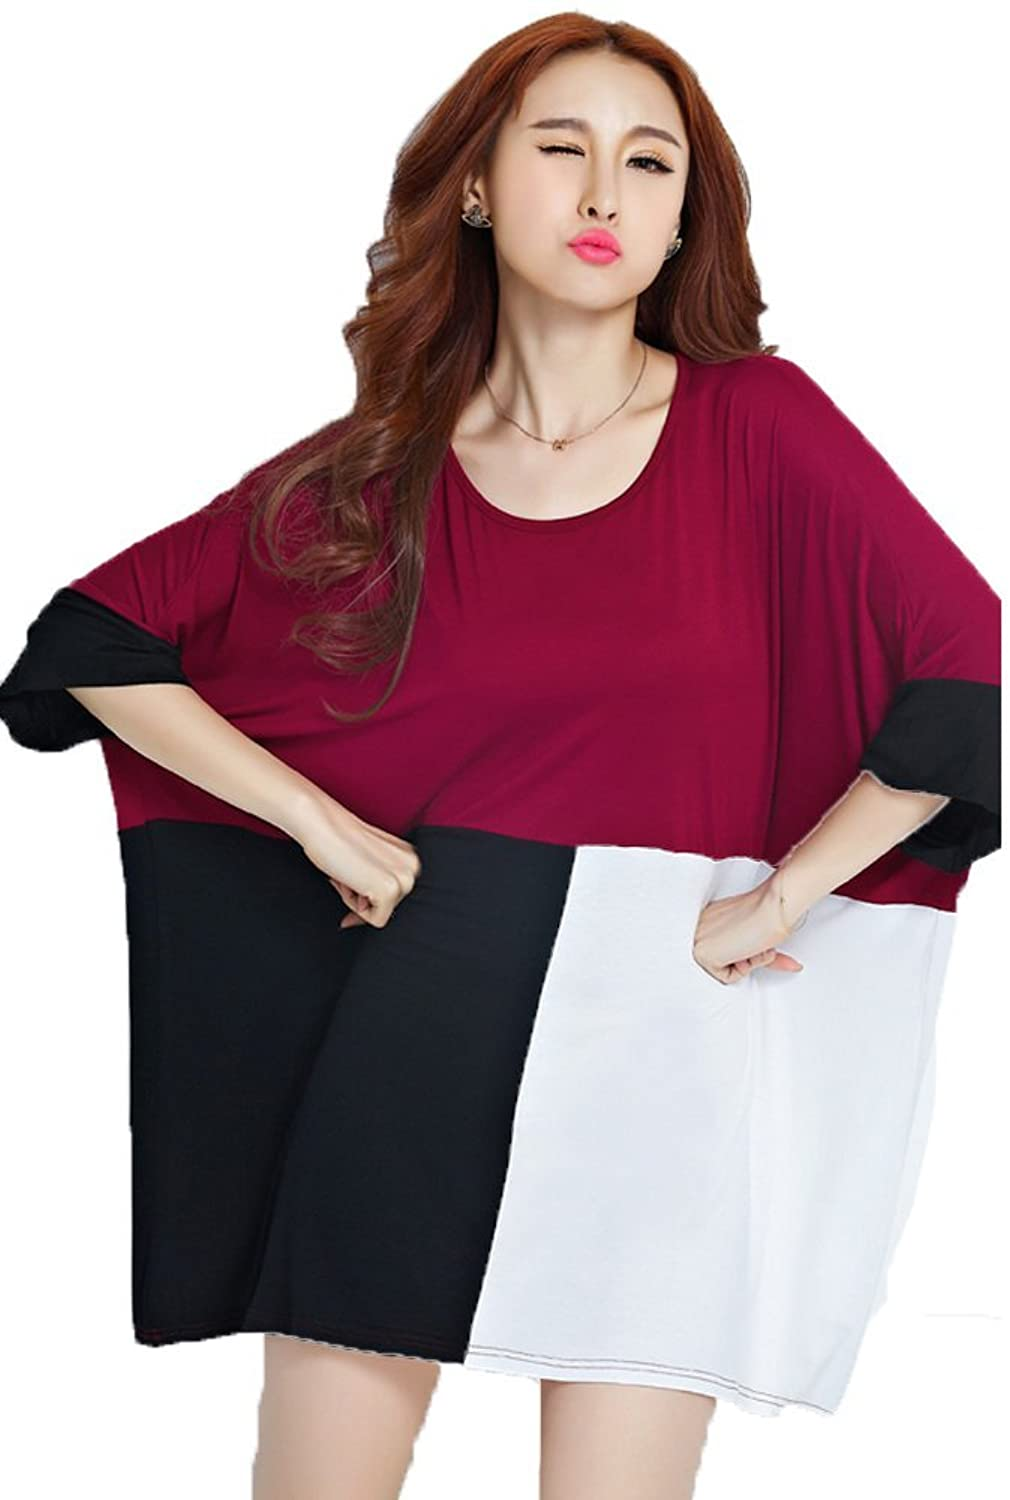 M-Bedy Women Large Size Checkered Fashion Color Block T Shirt and Tops Dress